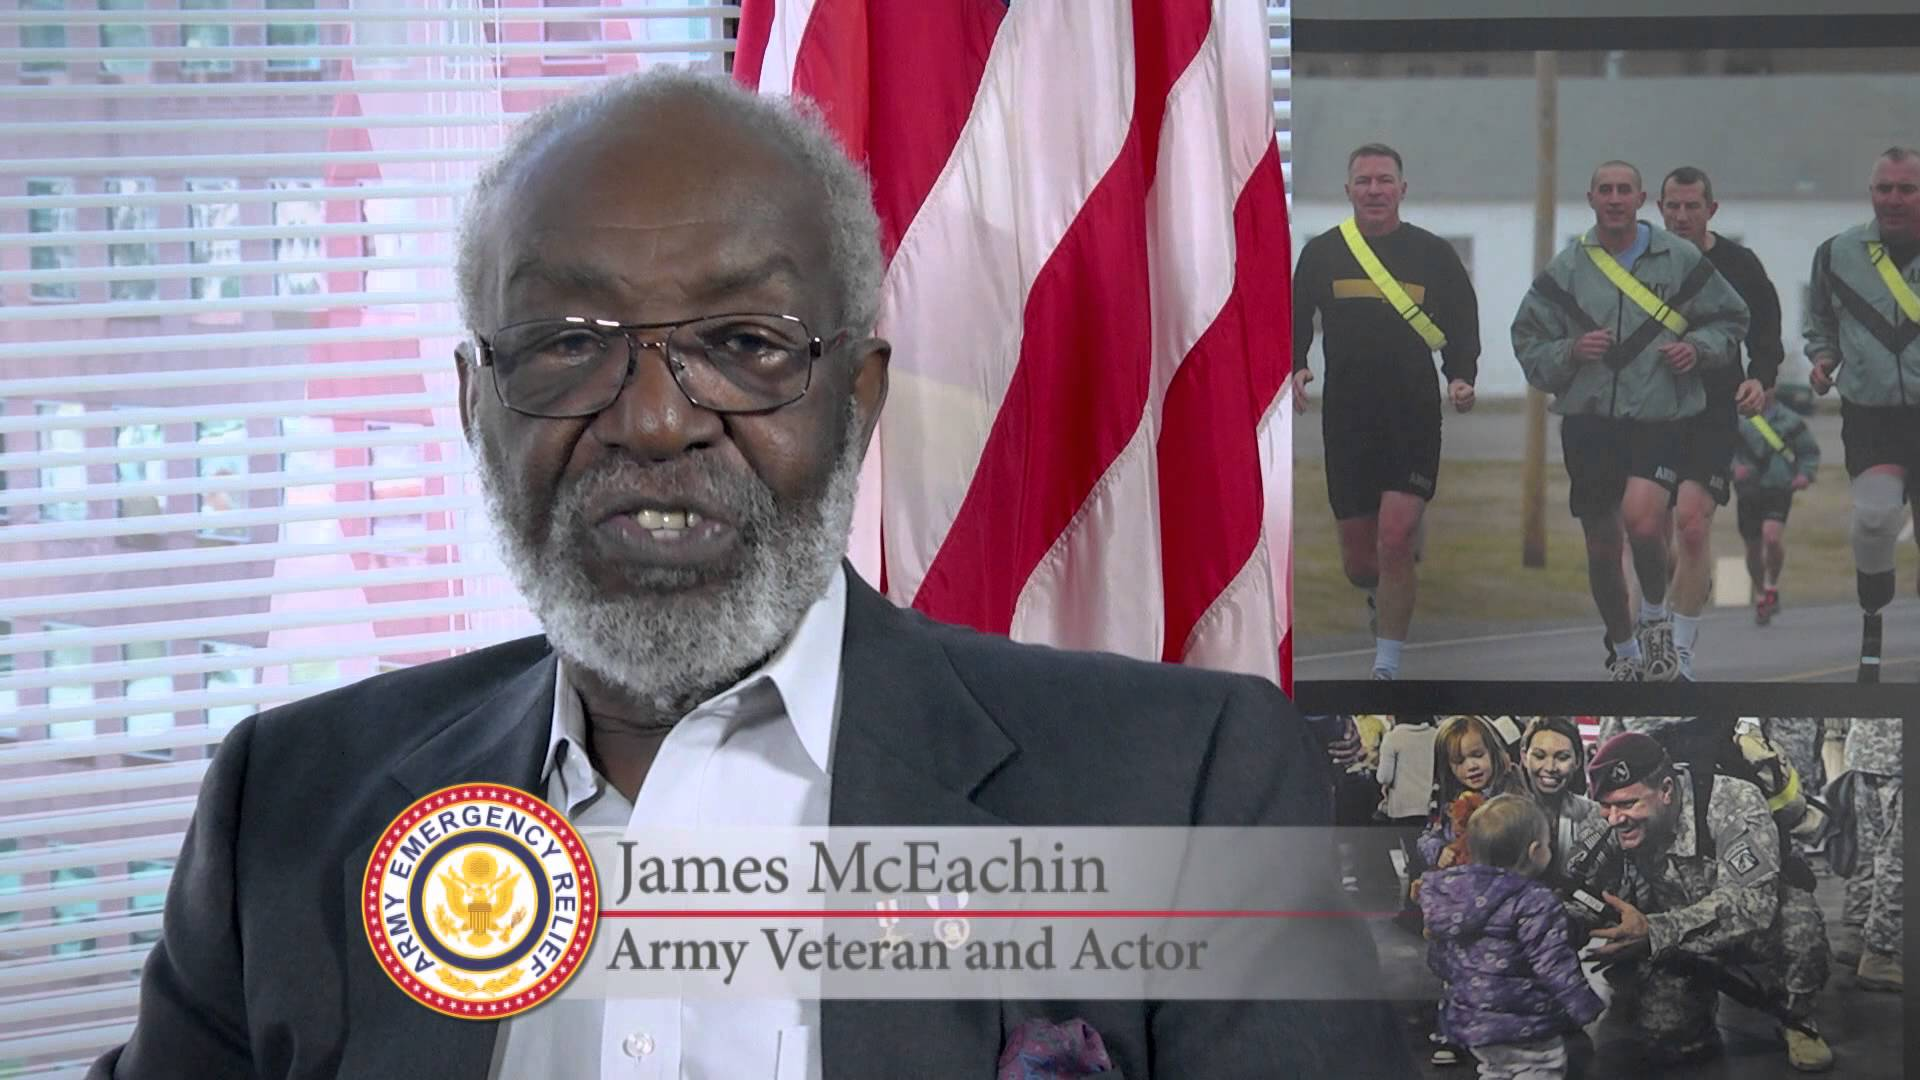 james-mceachin-army-veteran